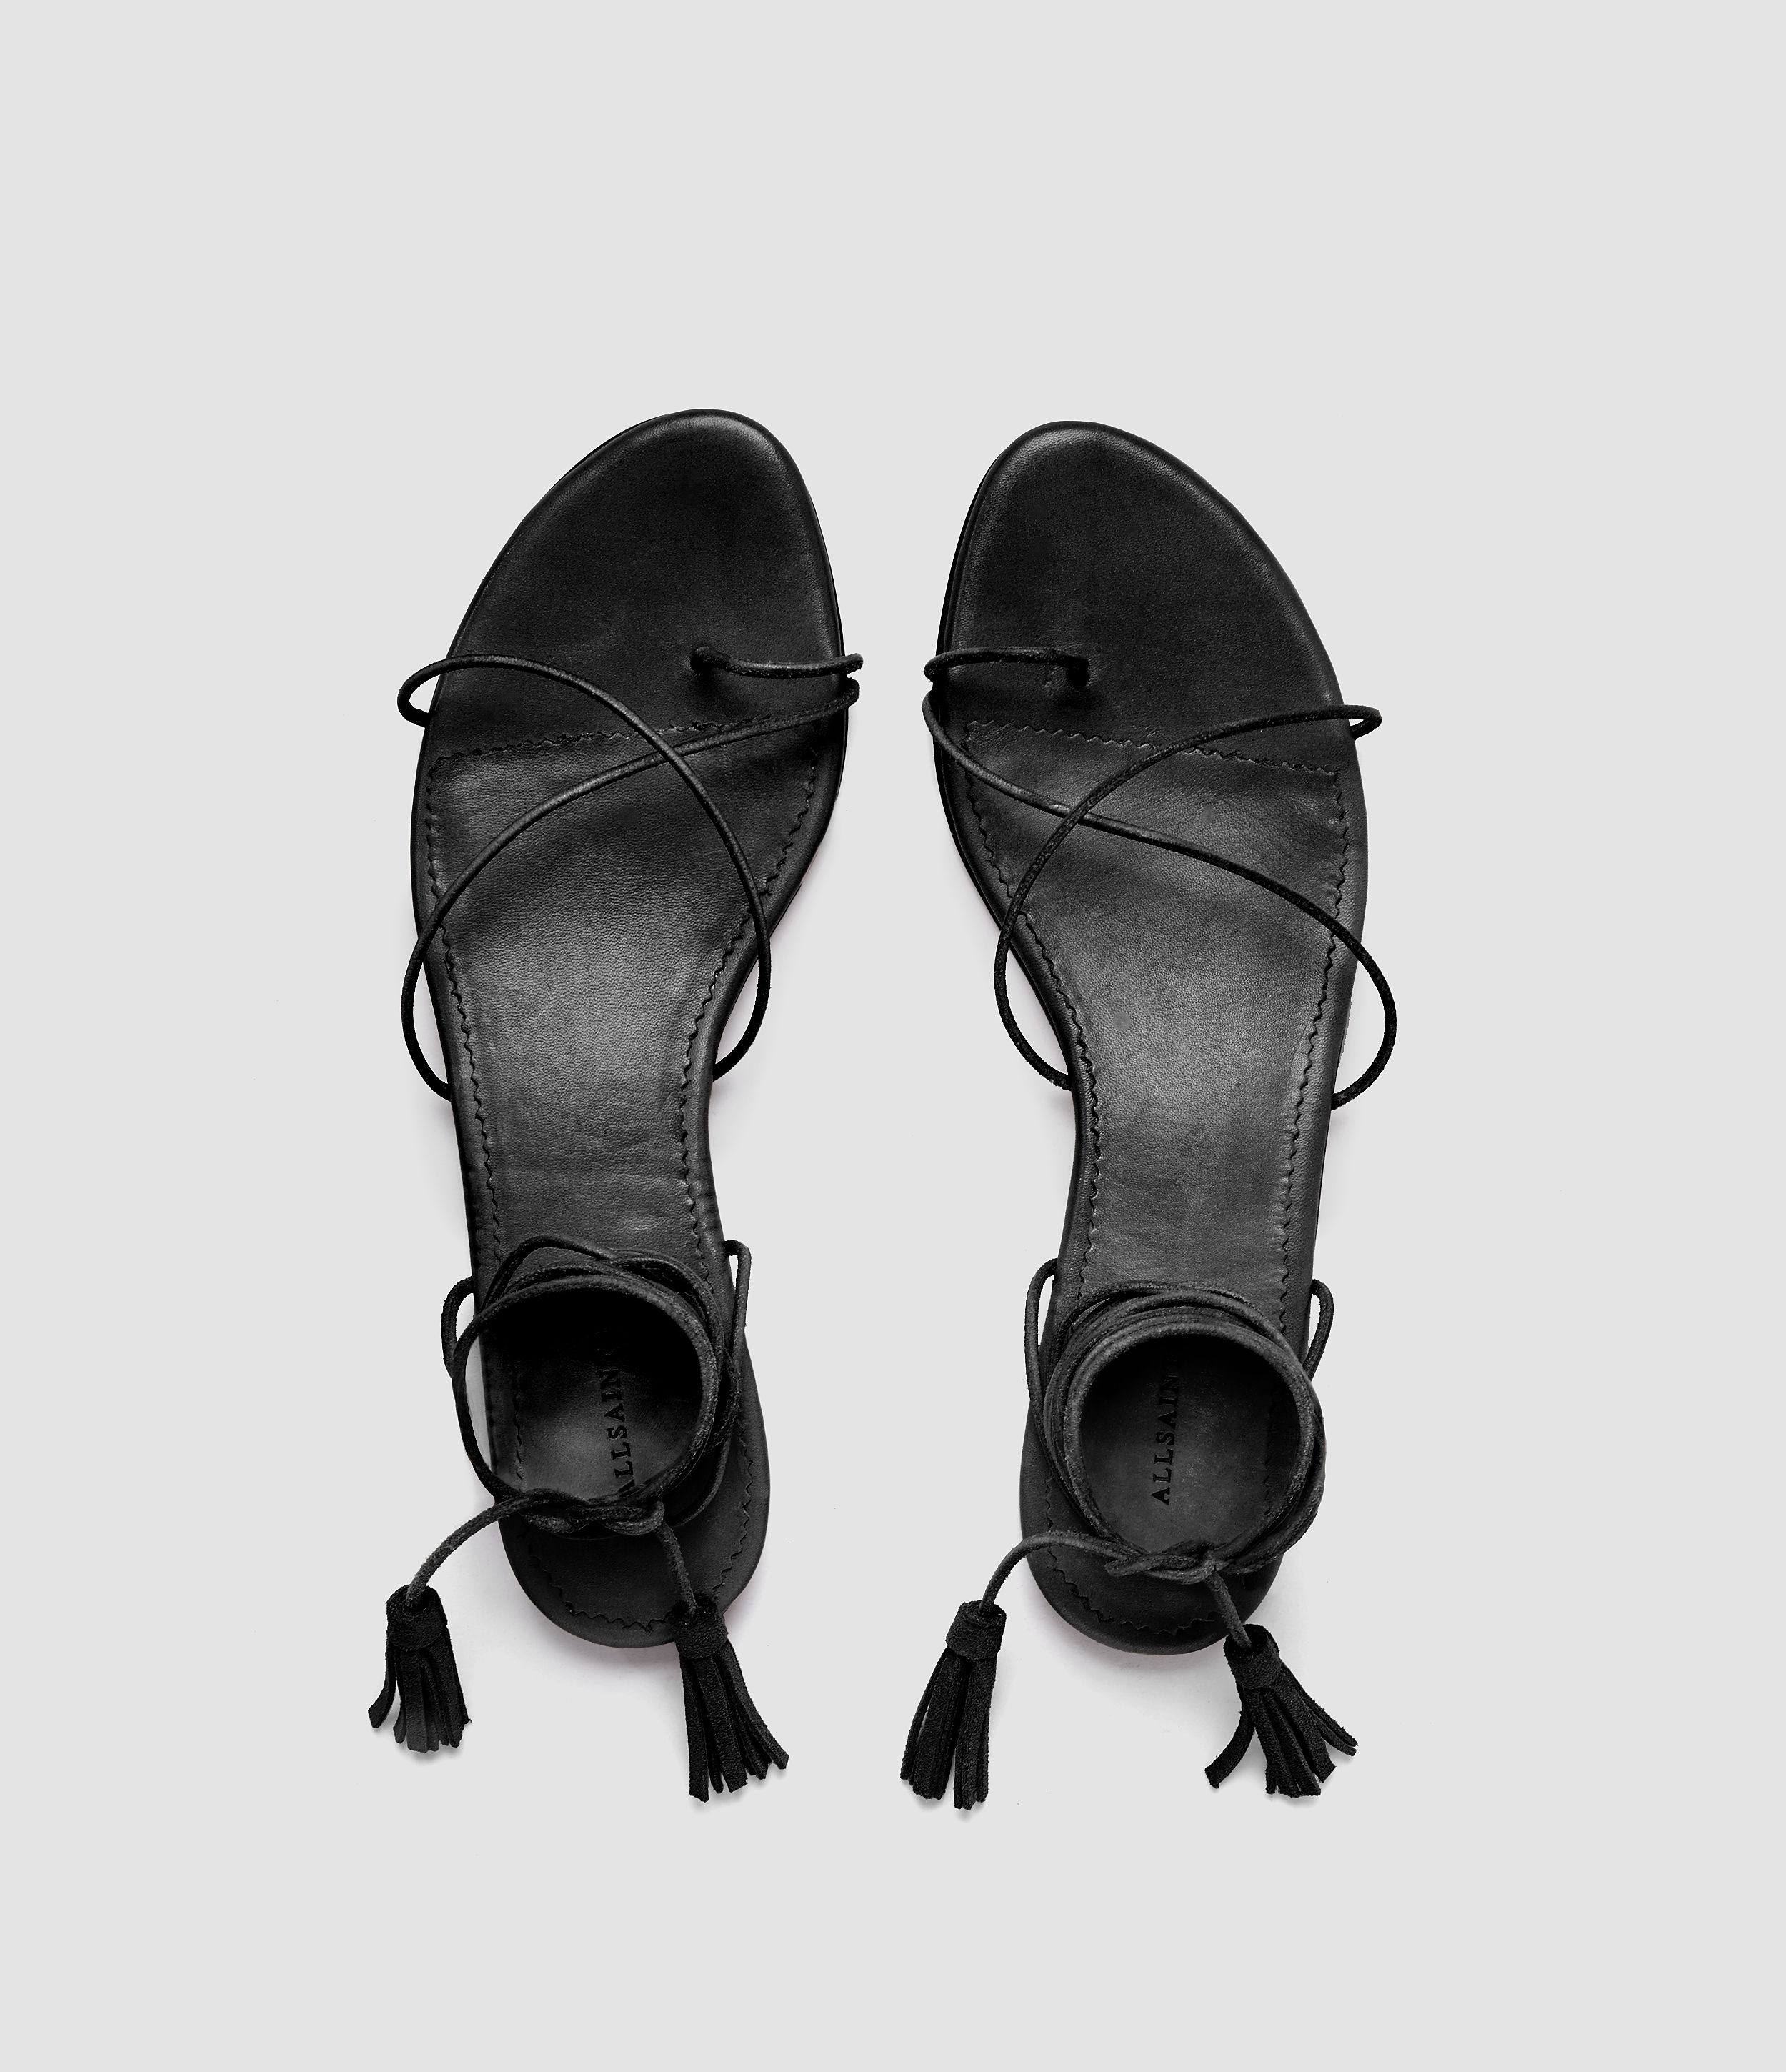 Dorica Flat Sandal   Hand finished self-lacing leather sandals.  ALLSAINTS $178